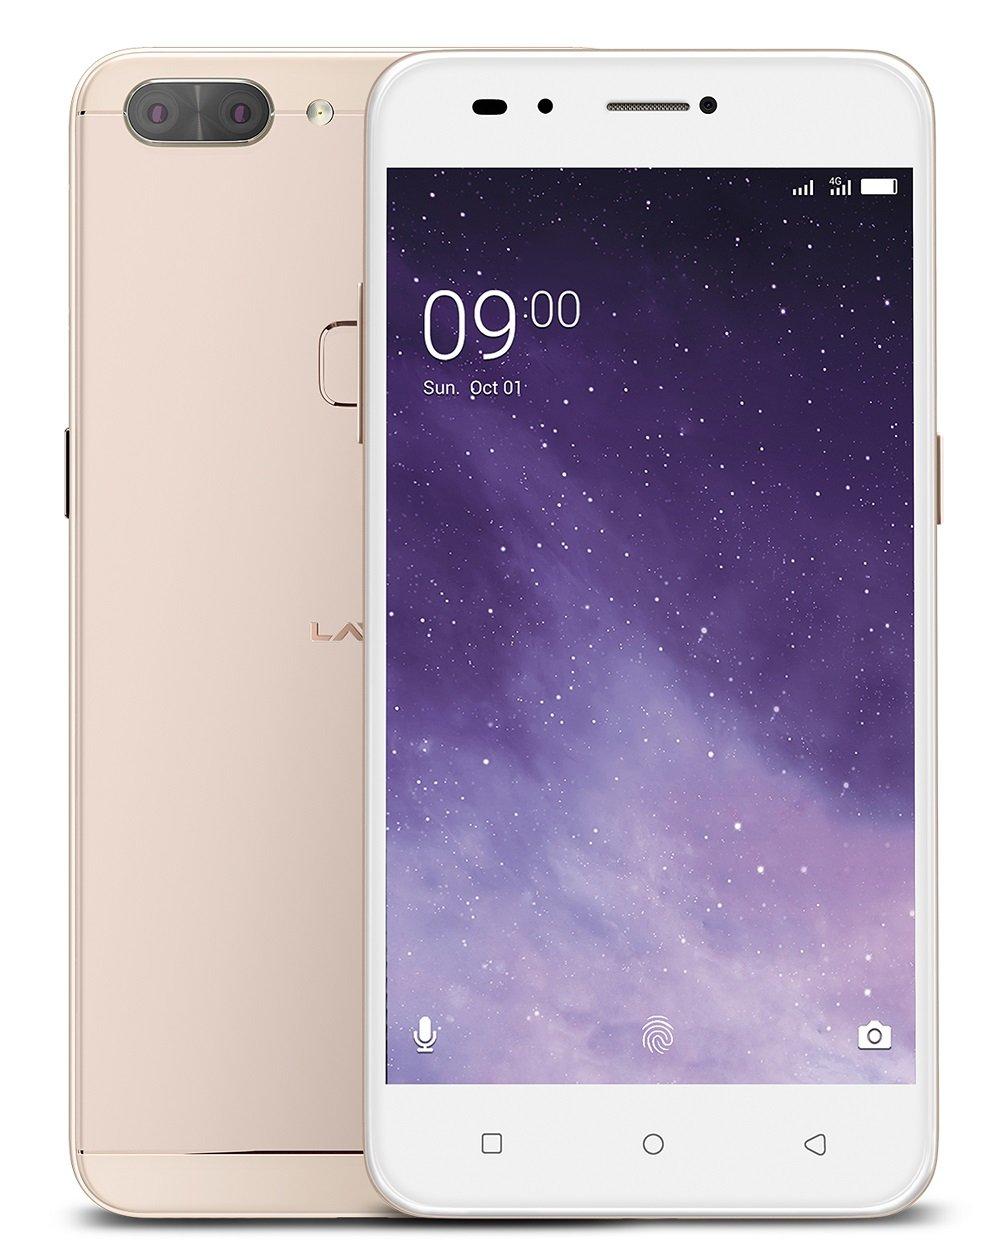 Lava z90 gold 32gb amazon electronics fandeluxe Gallery